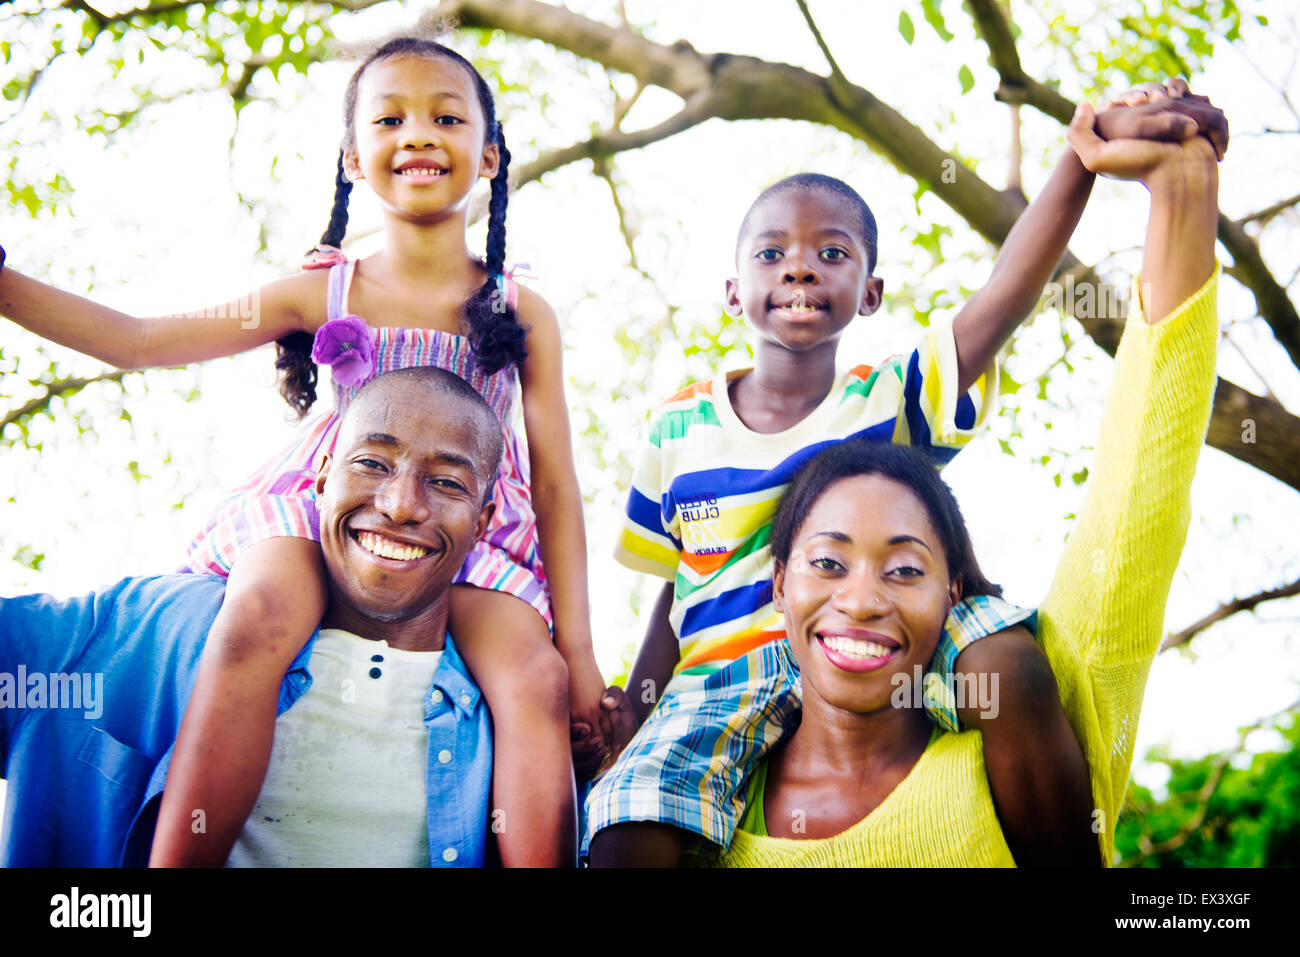 African Family Happiness Holiday Vacation Activity Concept - Stock Image